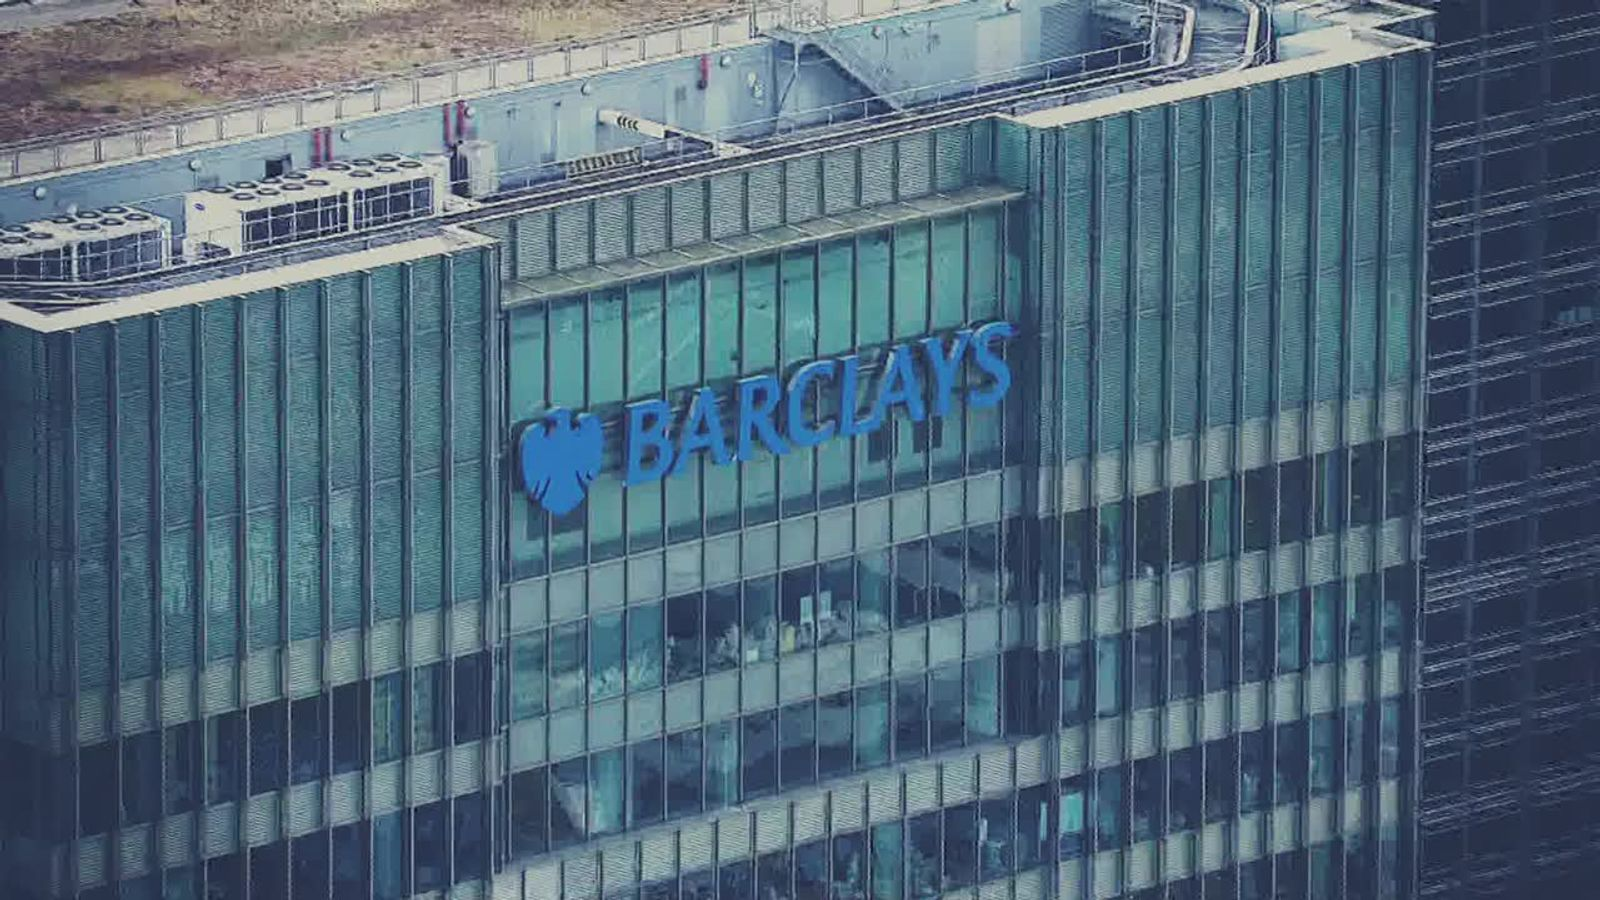 Barclays boss Staley apologizes at shareholders' meeting